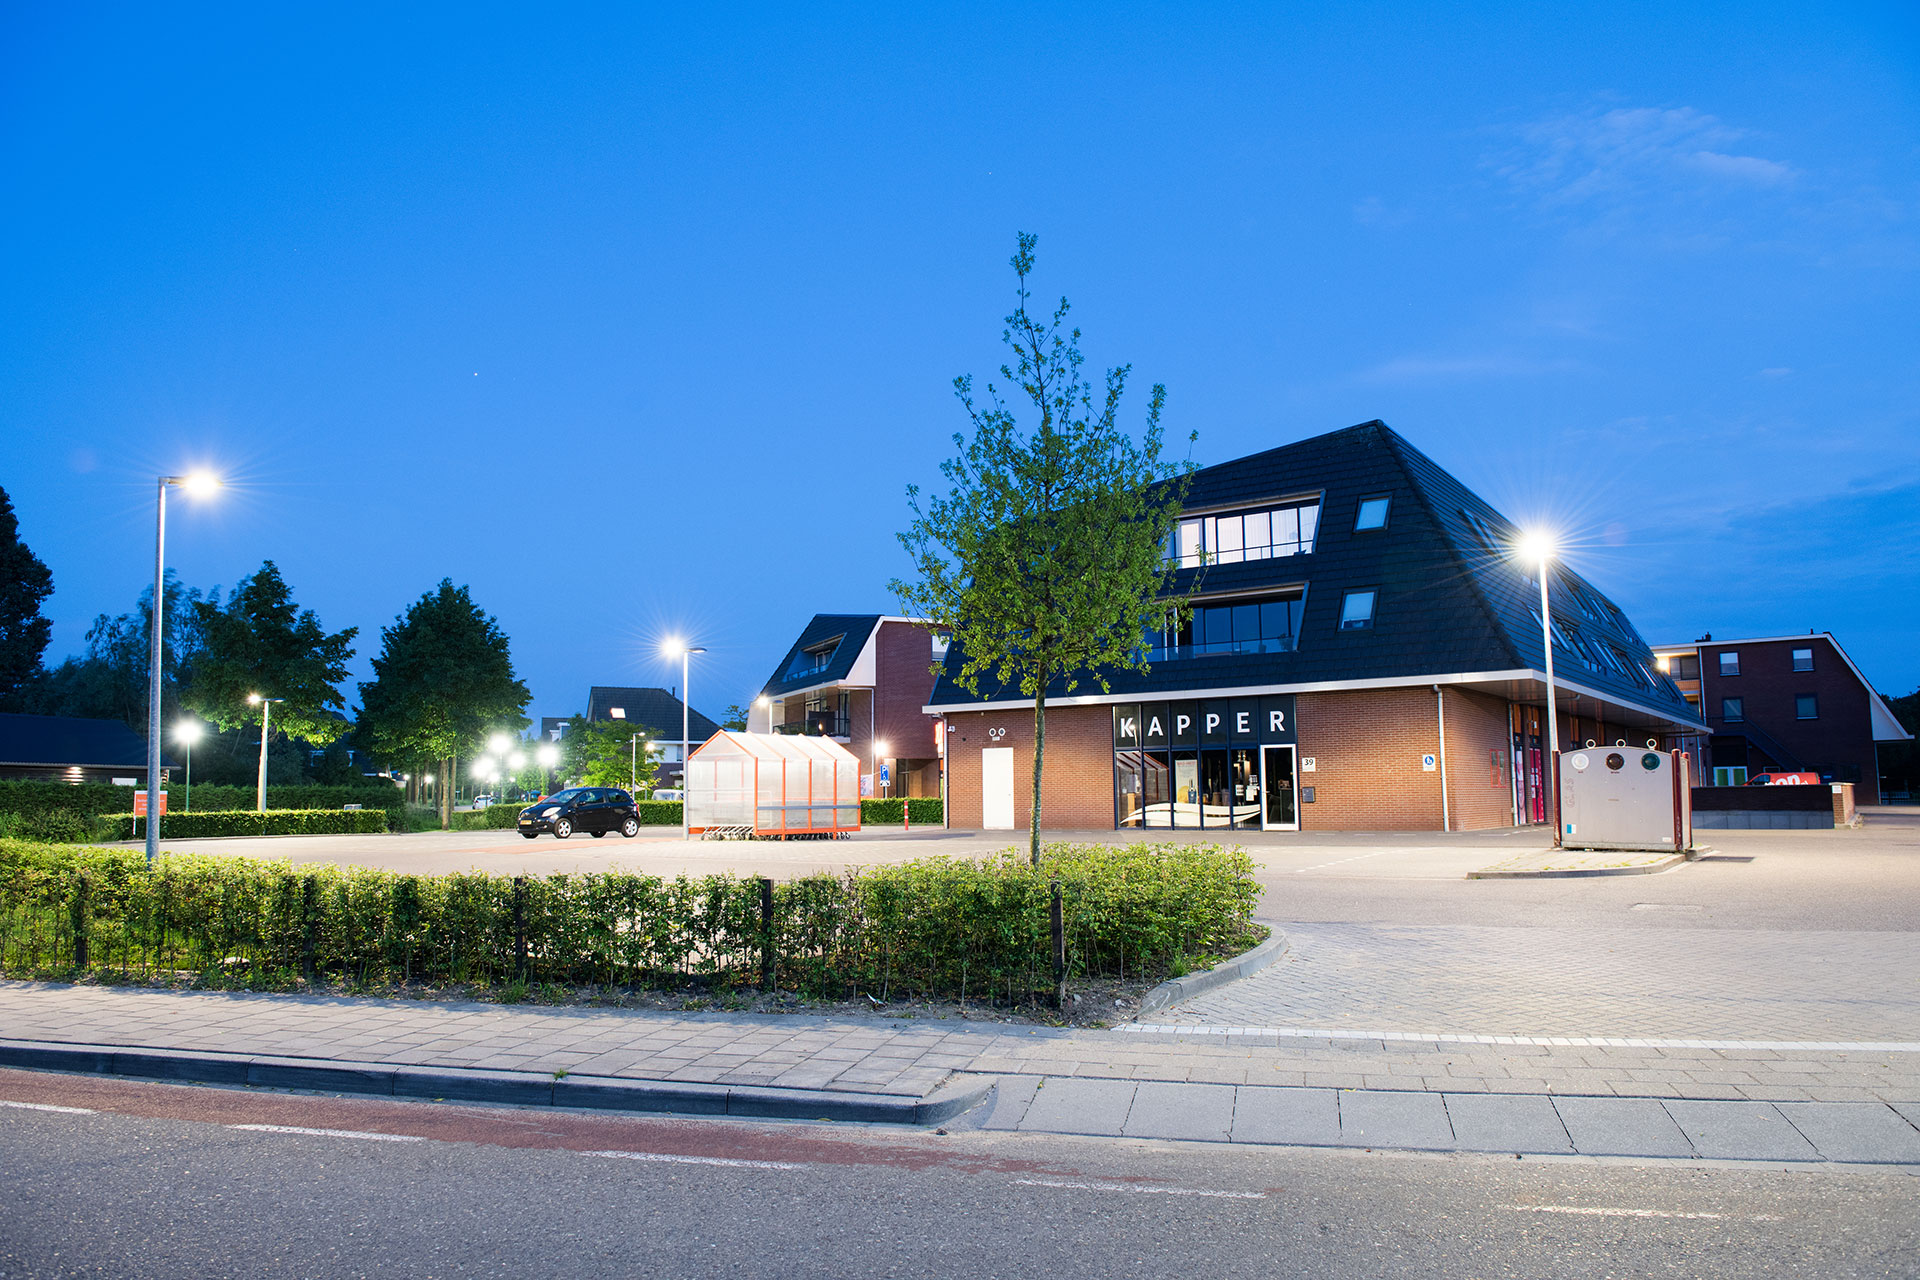 Ymera LED urban luminaire enhances visibility while creating a soft ambiance at night for Schoneveld complex